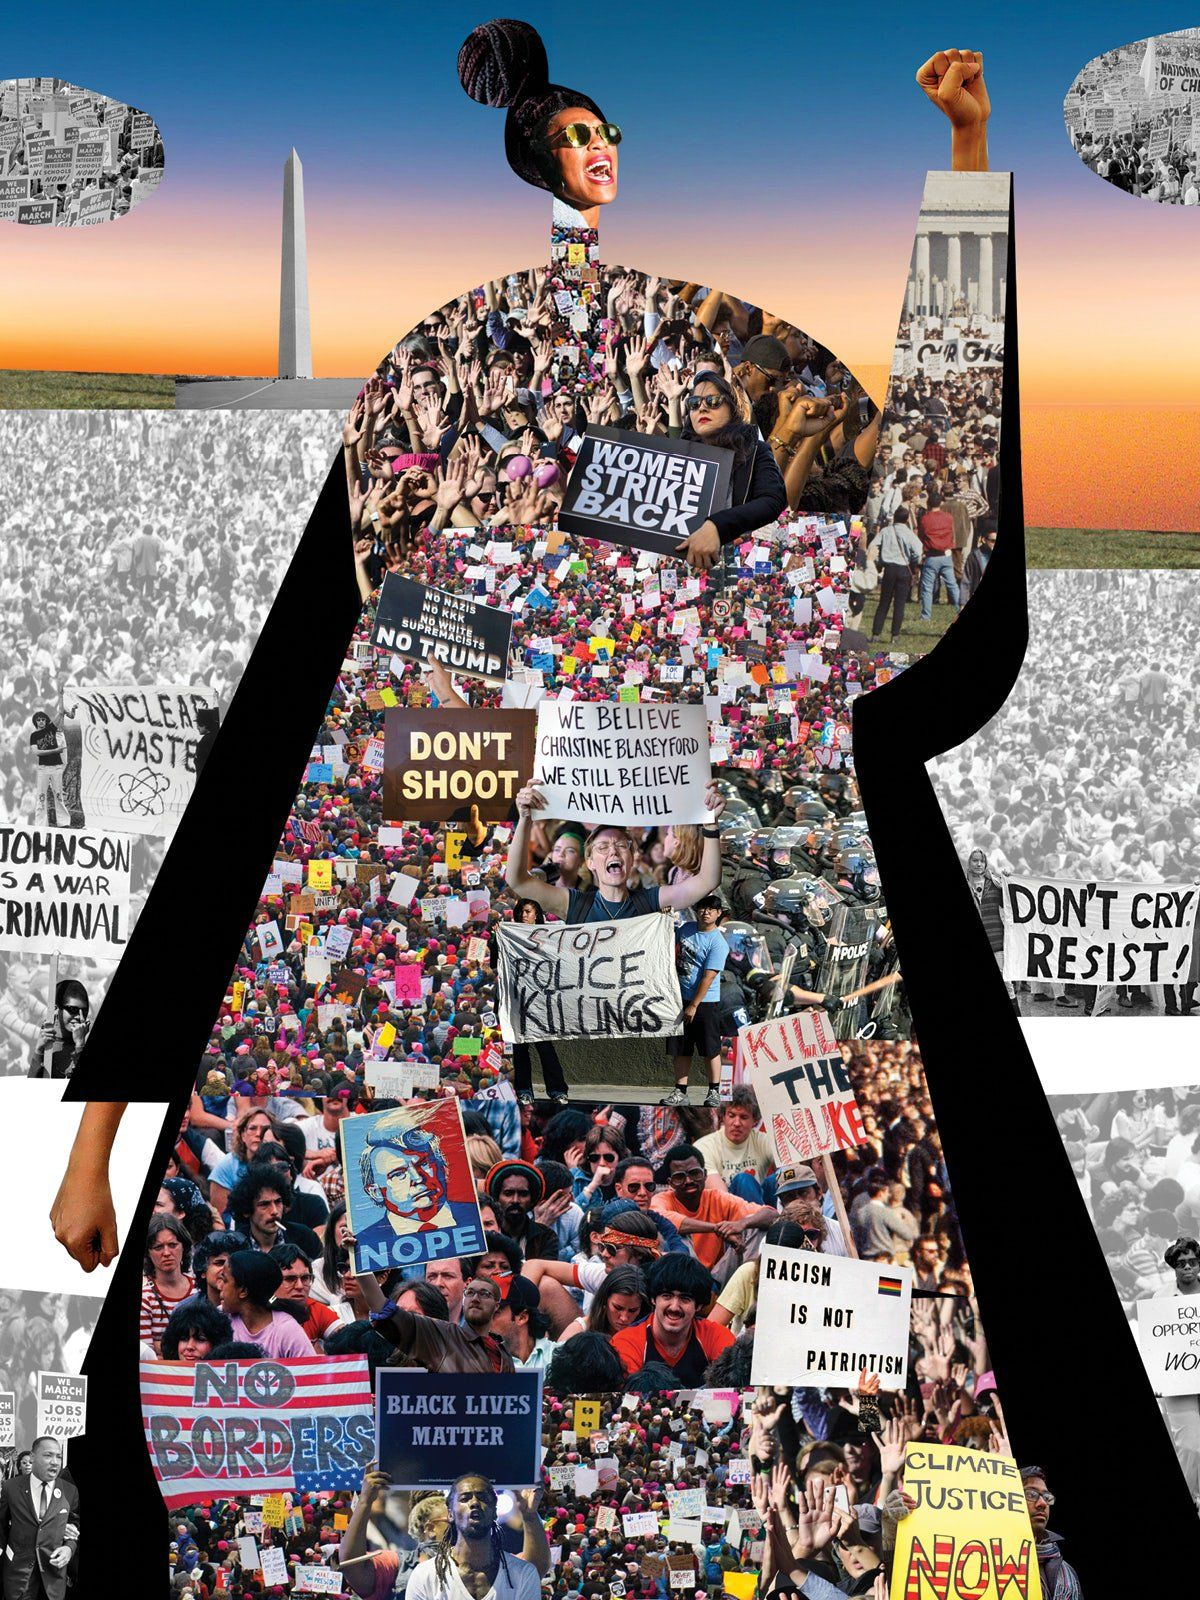 How To Build A Powerful Protest Movement